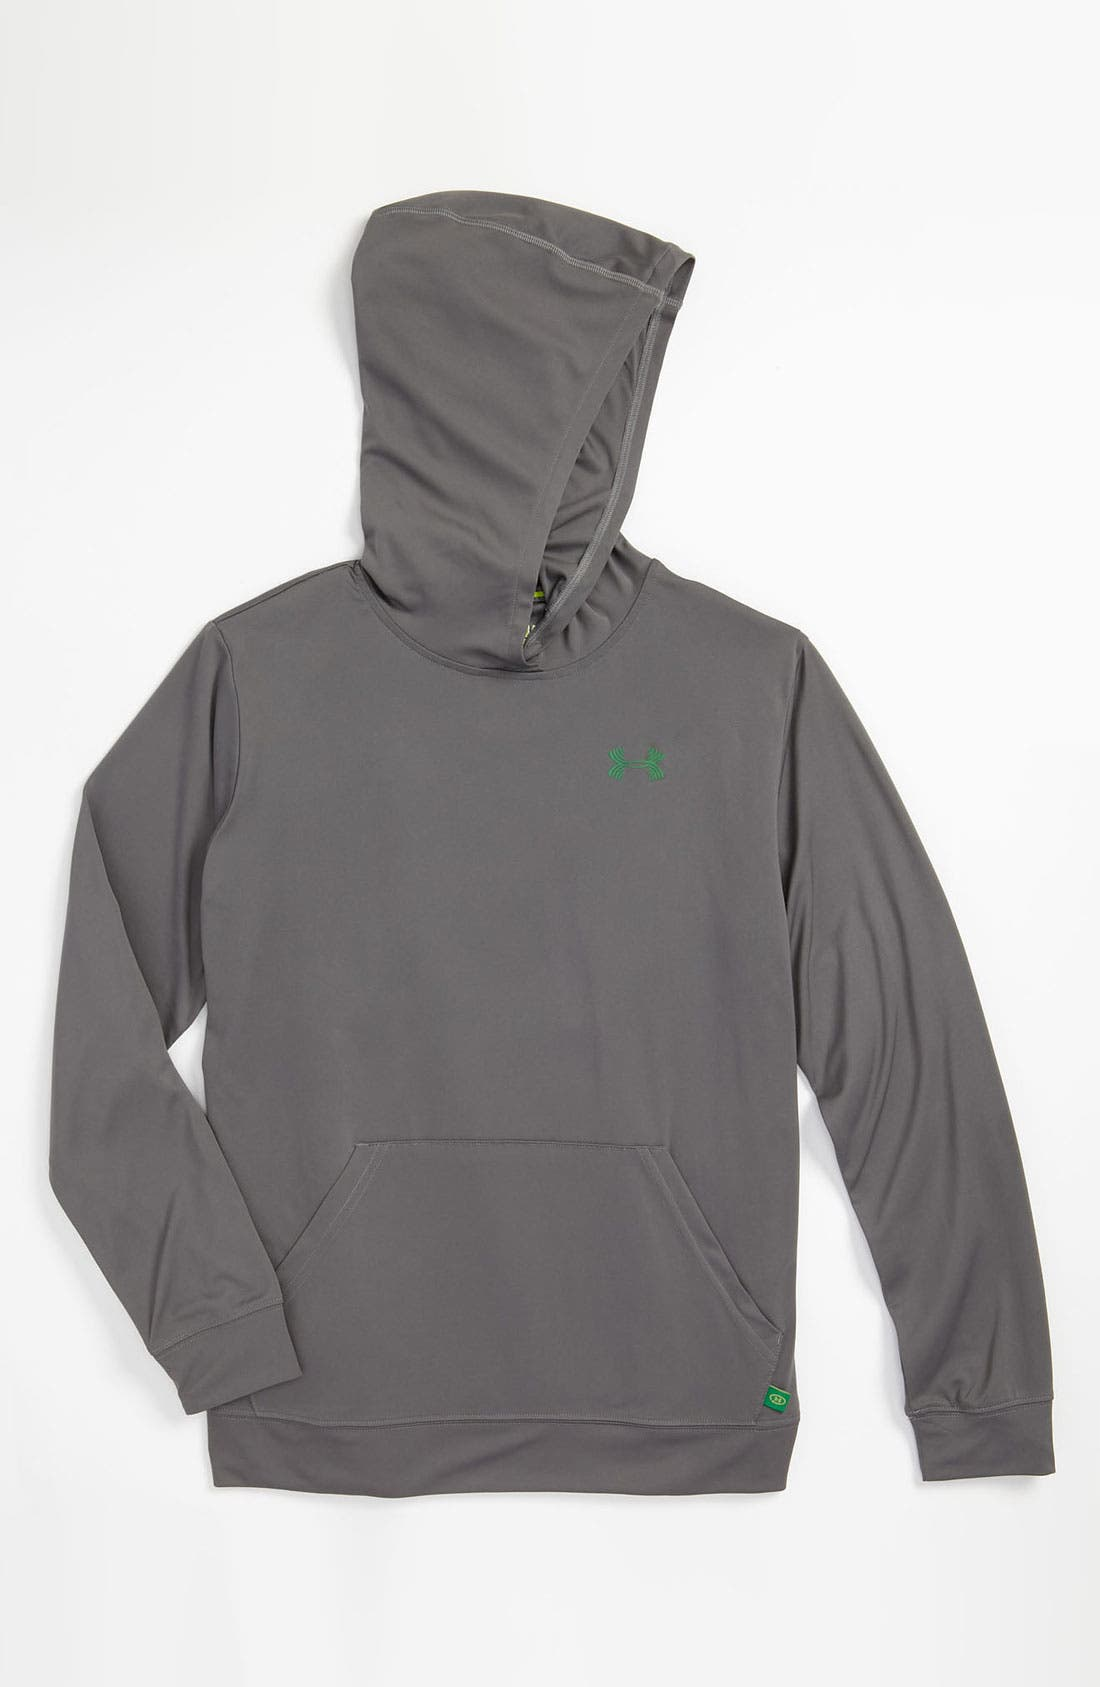 Main Image - Under Armour 'Defend Your Turf' Hoodie (Big Boys)